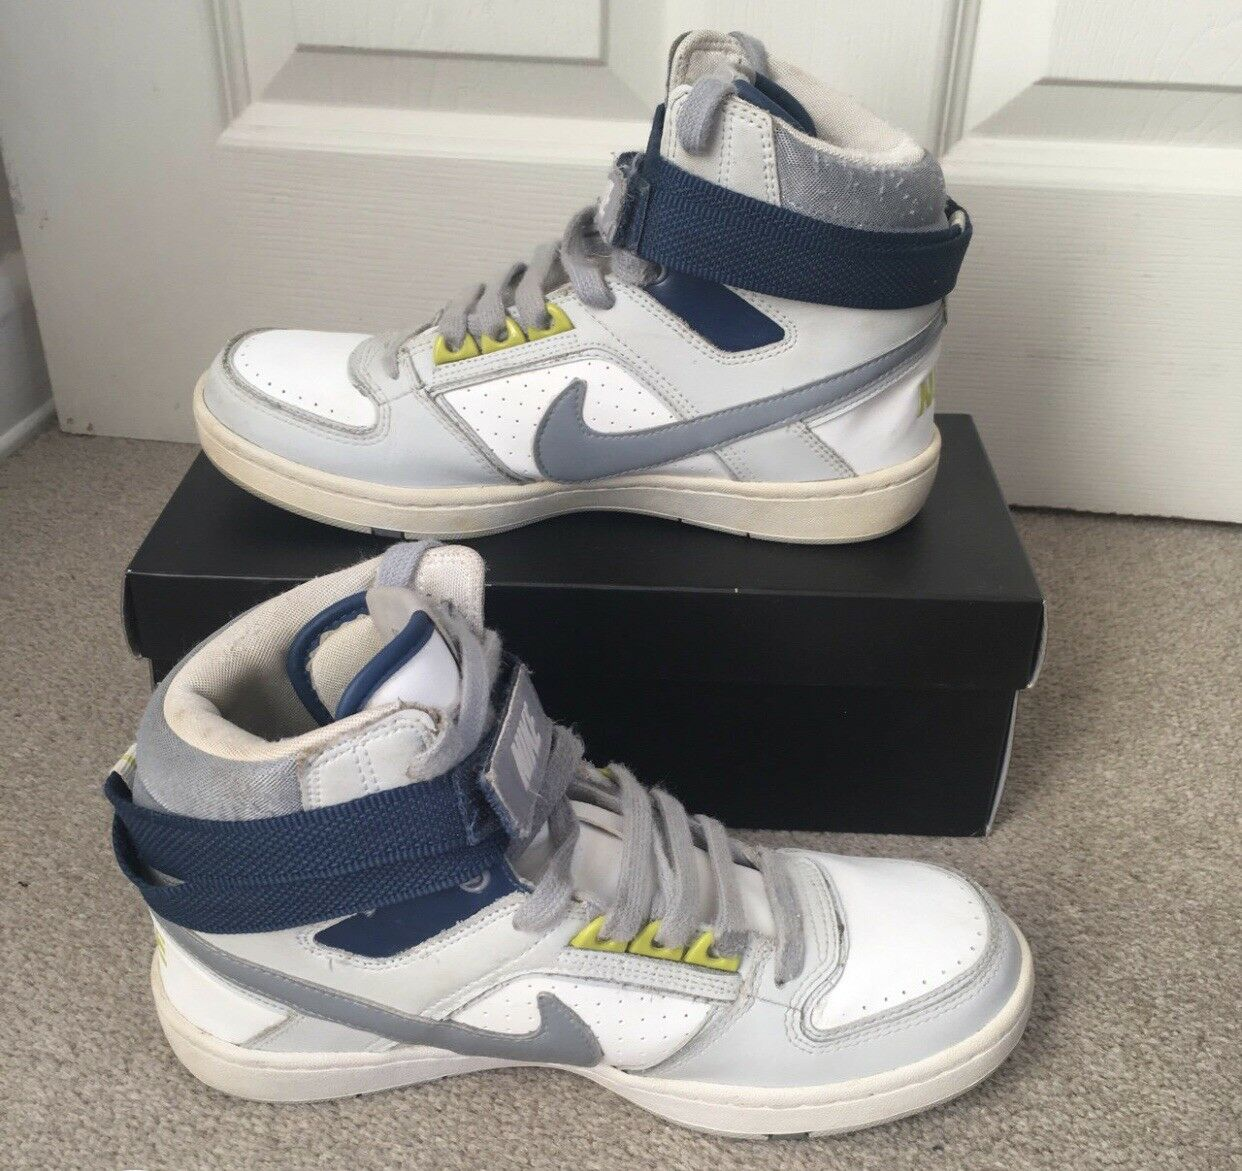 Womens Nike High Top Trainers size 5 Brand discount